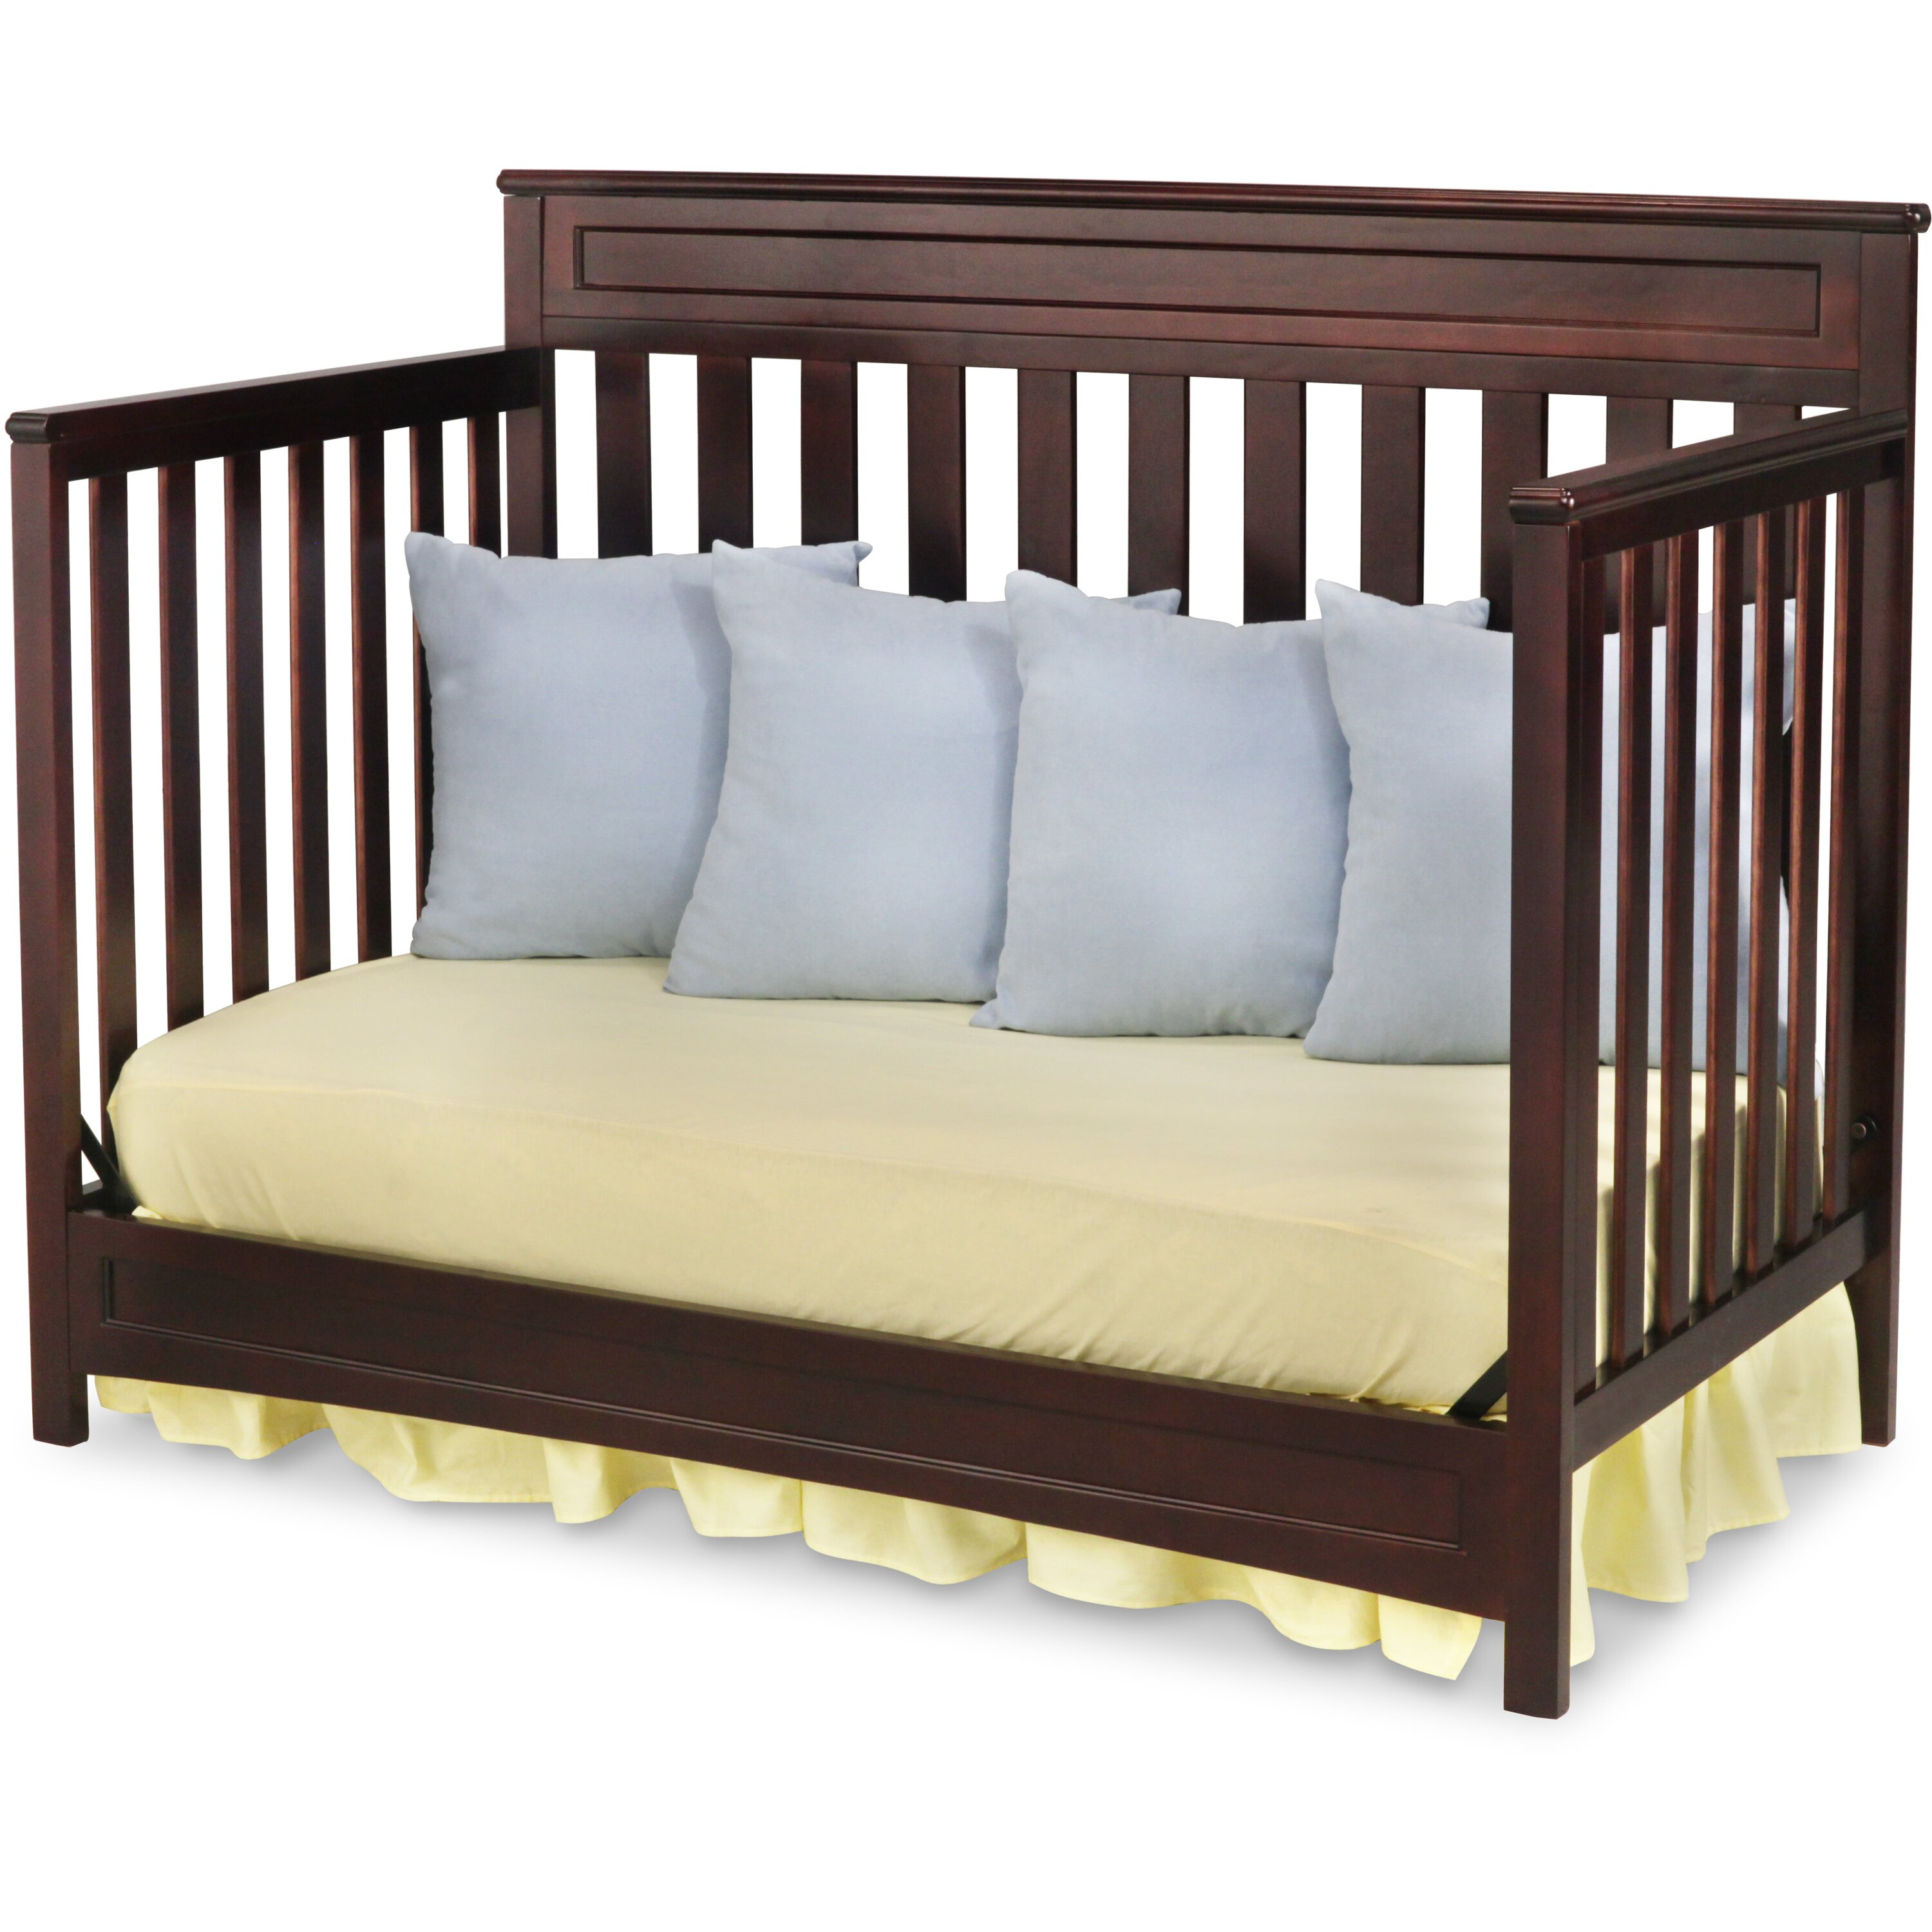 delta children geneva 4 in 1 convertible crib reviews wayfair